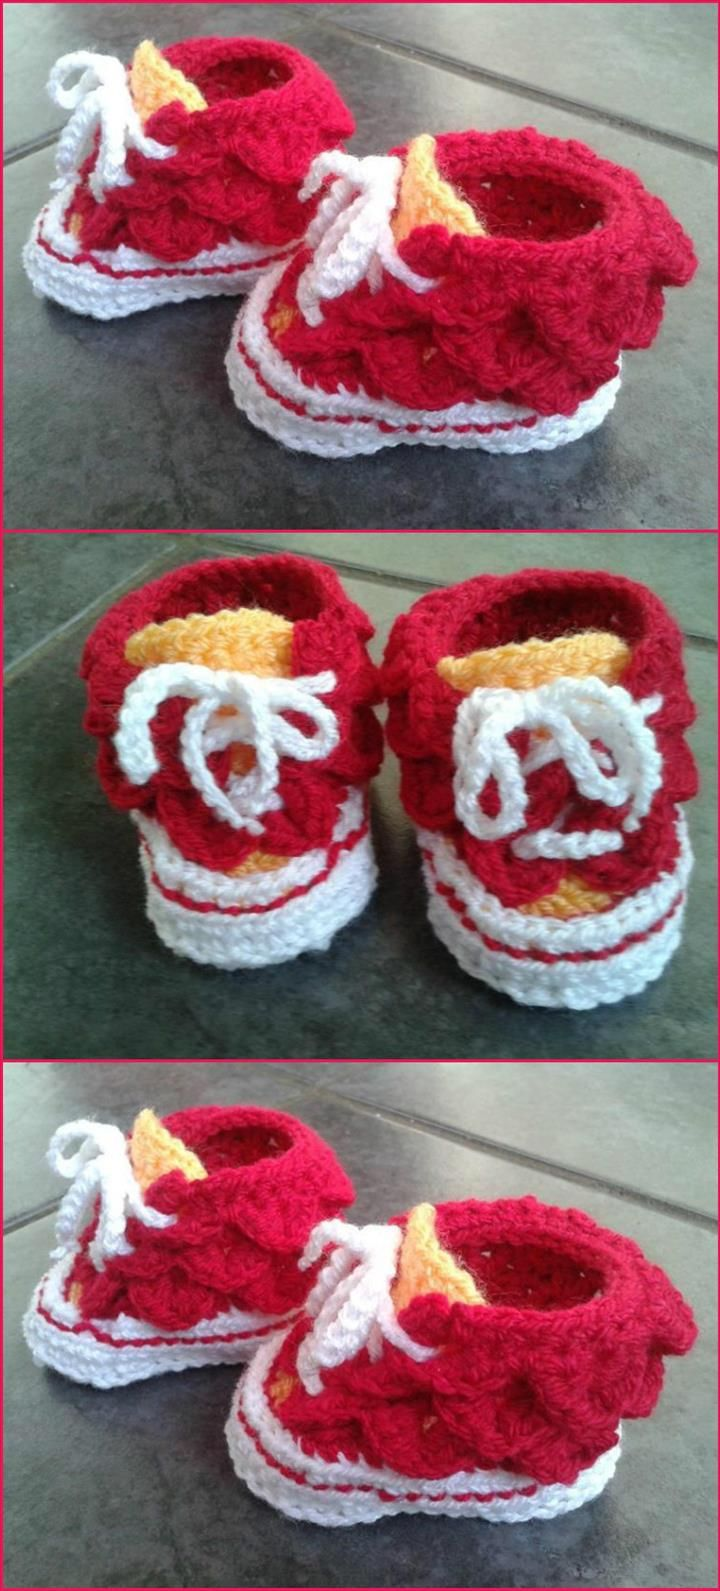 Top 40 free crochet baby booties patterns crochet crocodile we have brought here these 40 free crochet baby booties patterns that are quick to whip up and come with super stunning designs that will warm every moms bankloansurffo Choice Image